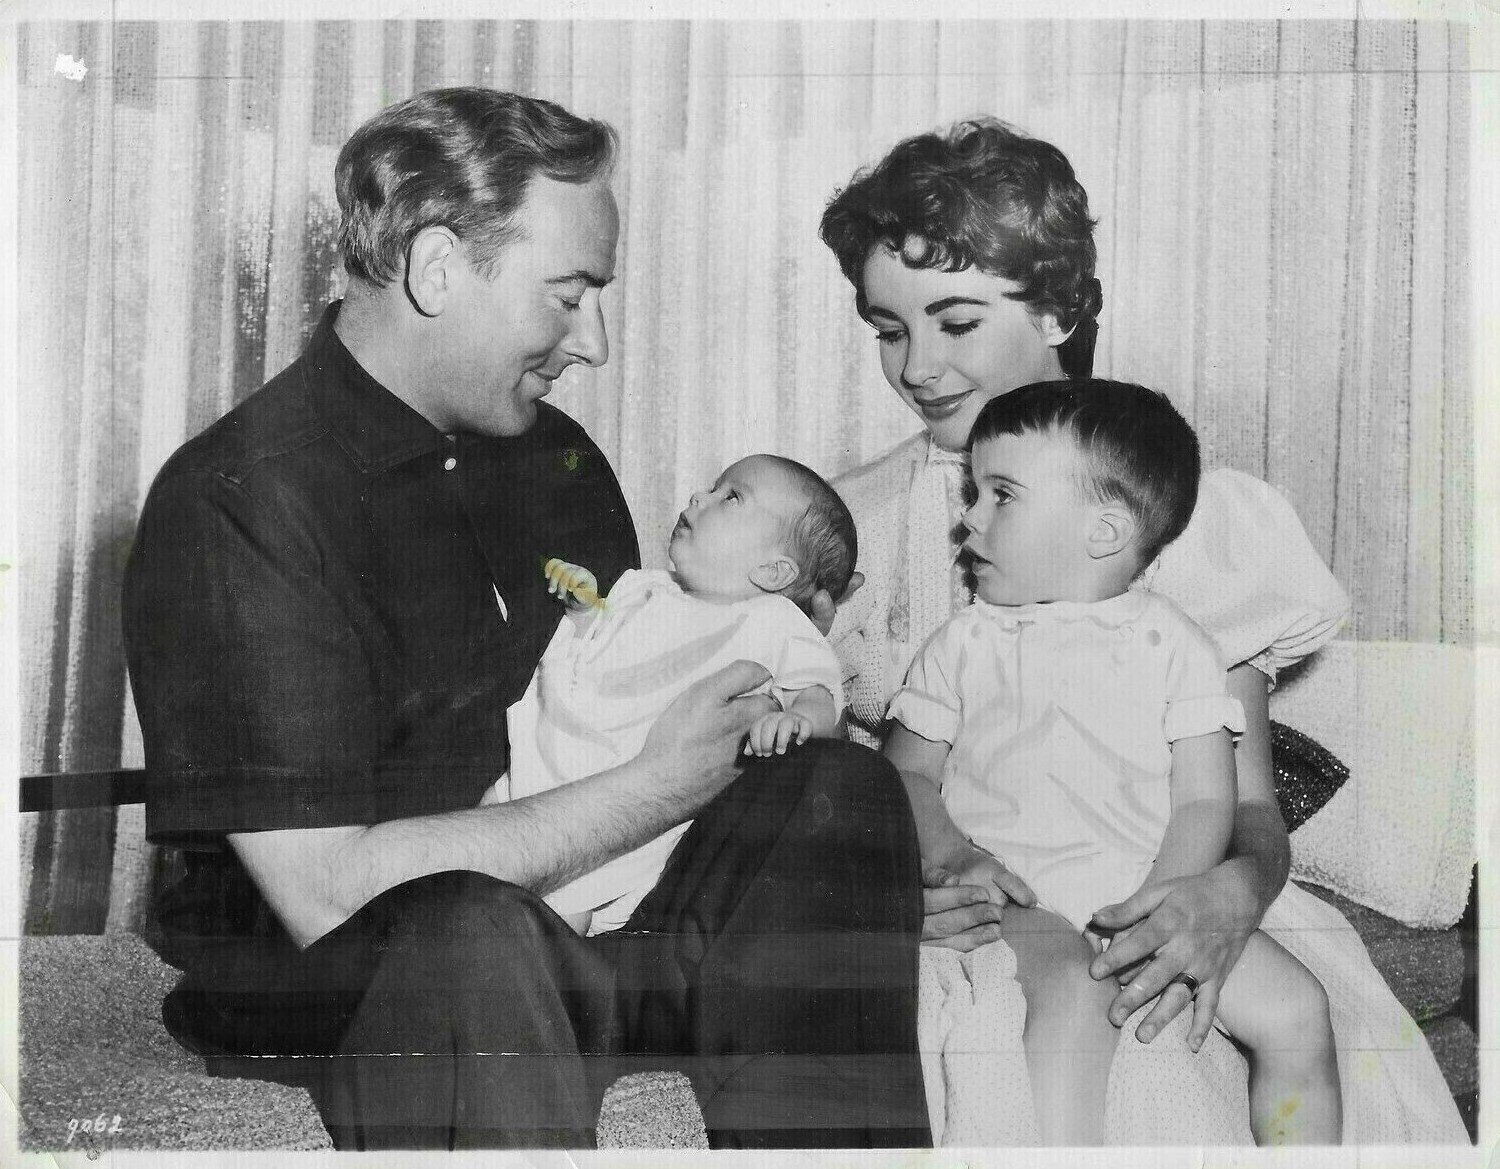 Elizabeth Taylor and her second husband Michael Wilding with their children Christopher Edward Wilding and Michael Wilding, Jr., September 1956. | Source: Wikimedia Commons